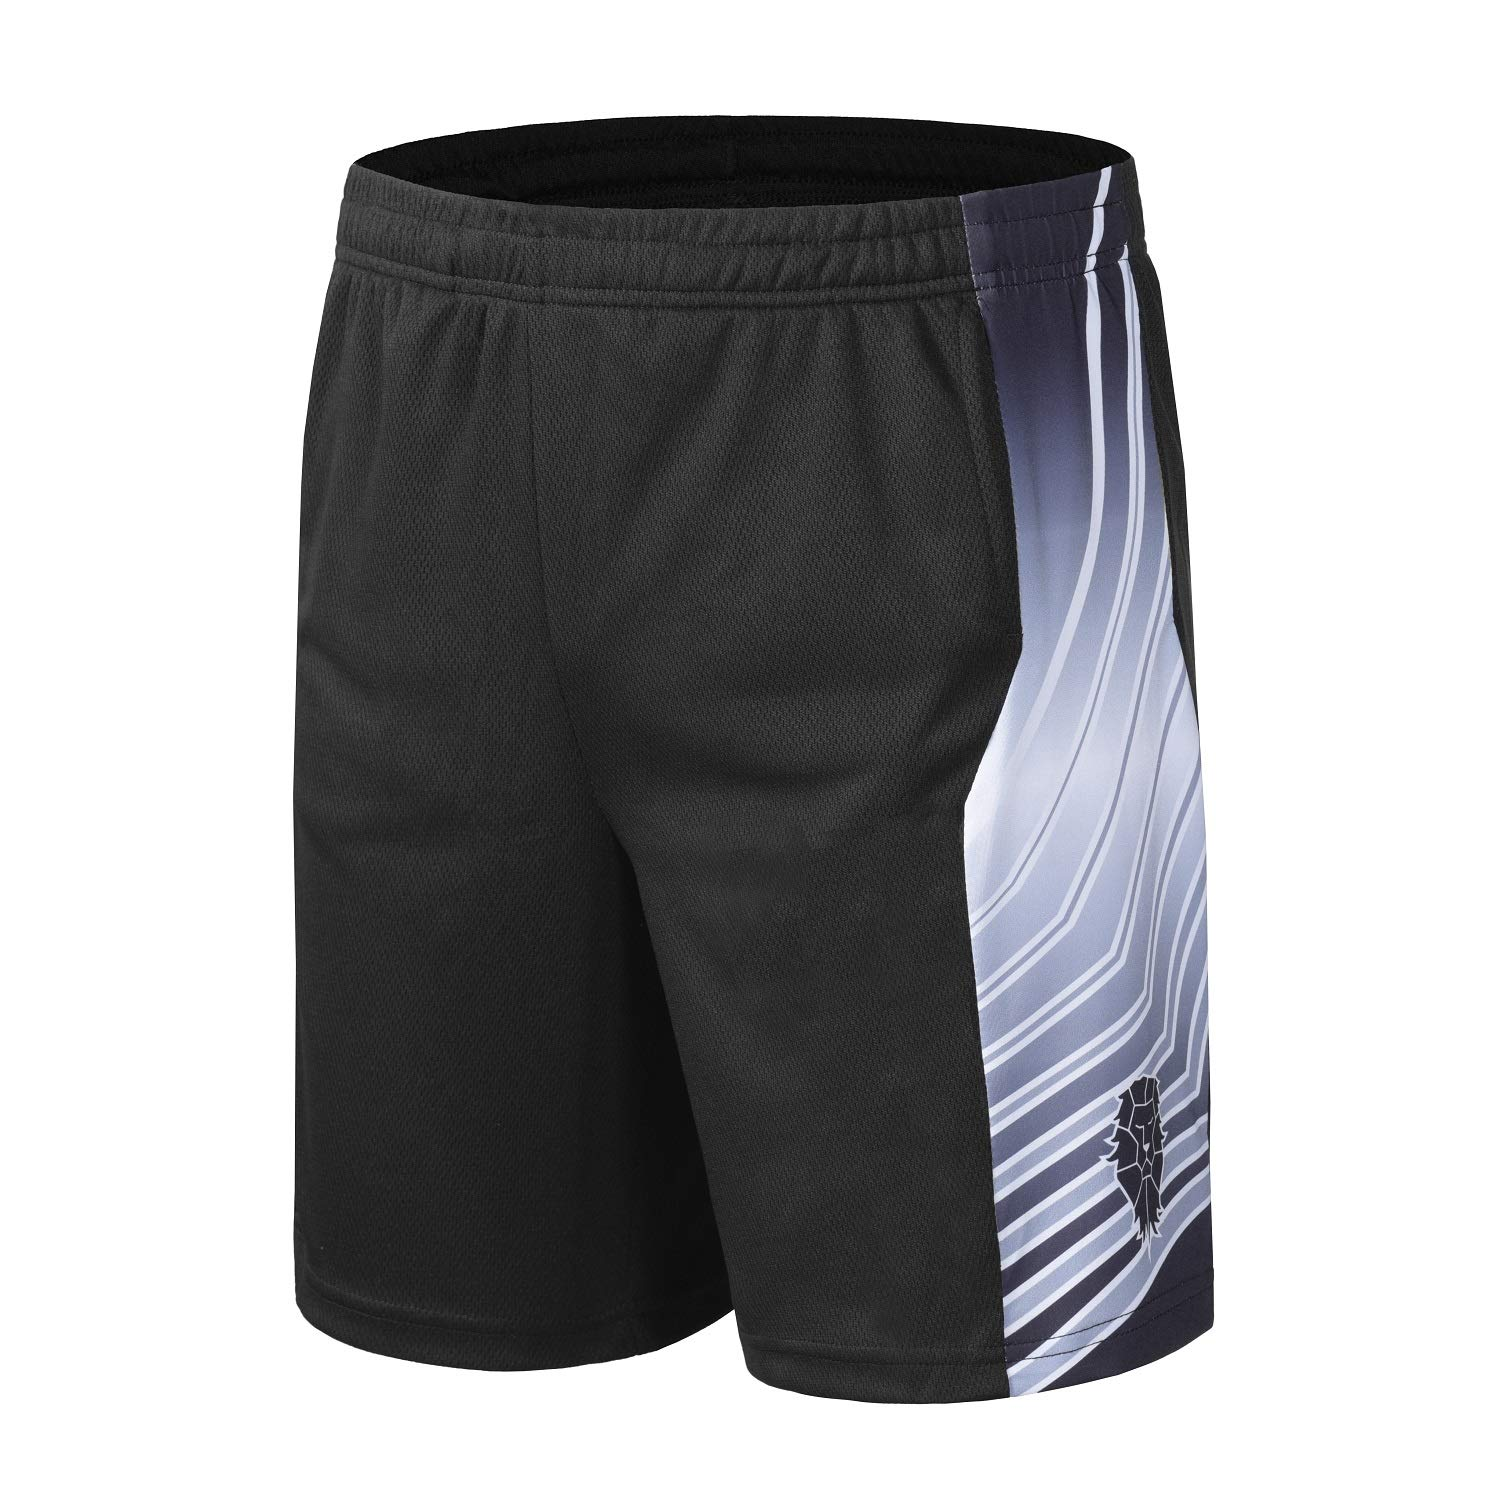 PIQIDIG Youth Boys' Loose Fit Athletic Shorts Quick Dry Active Shorts with Pocket, 2-Pack (Black-1, Large) by PIQIDIG